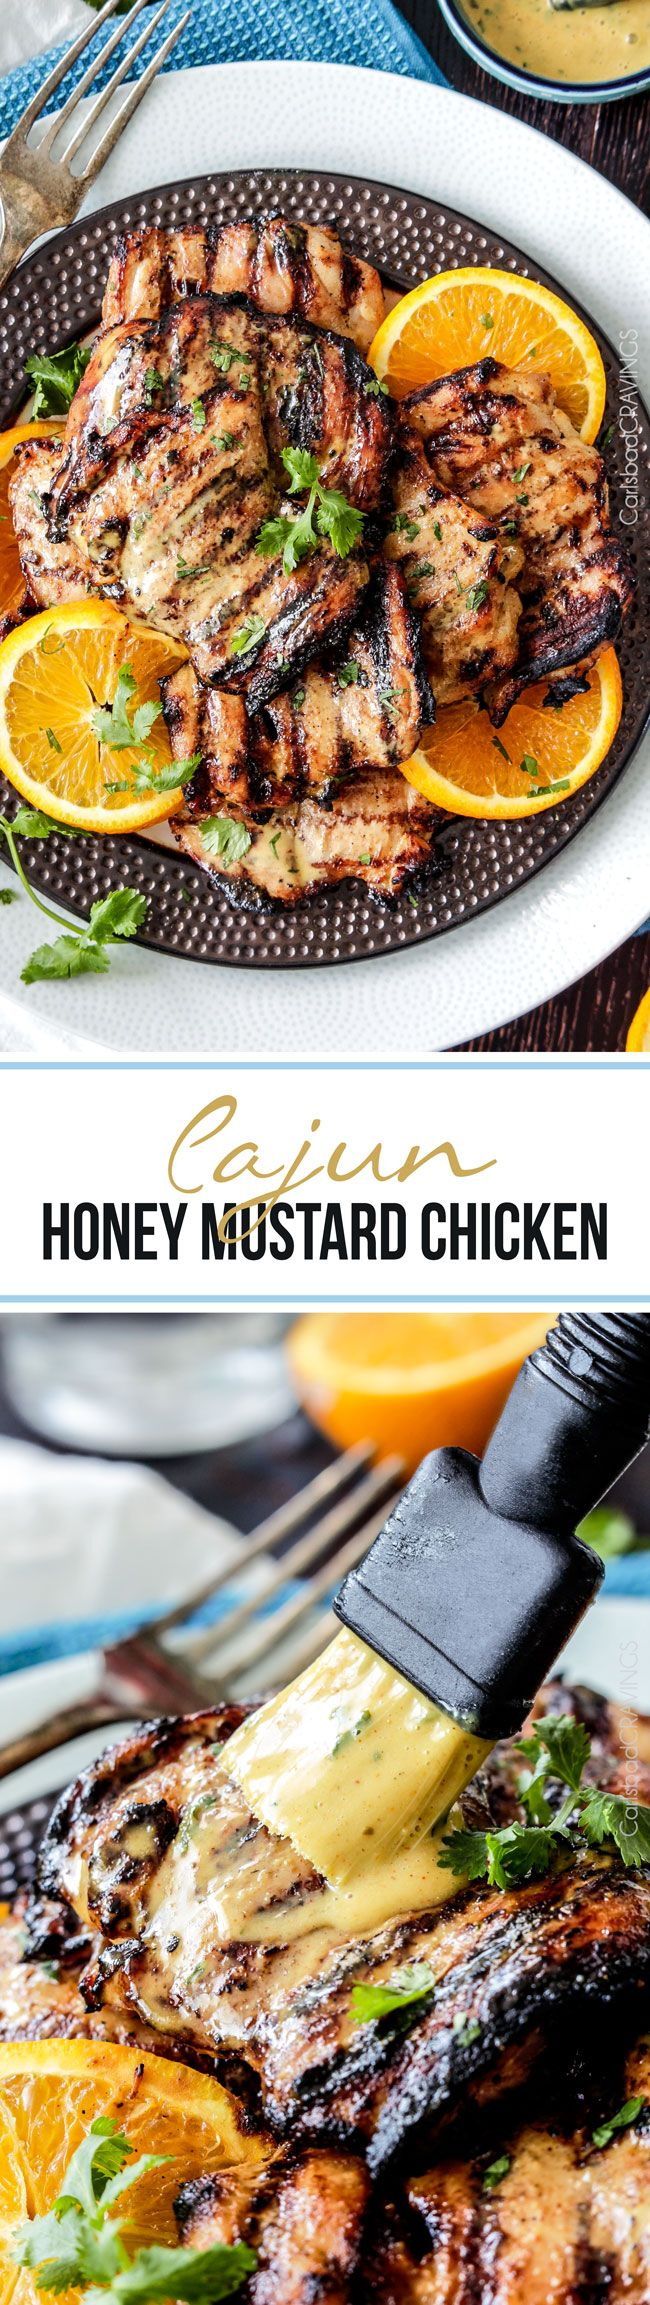 Easy tangy, sweet and spicy Cajun Honey Mustard Chicken smothered in a creamy…